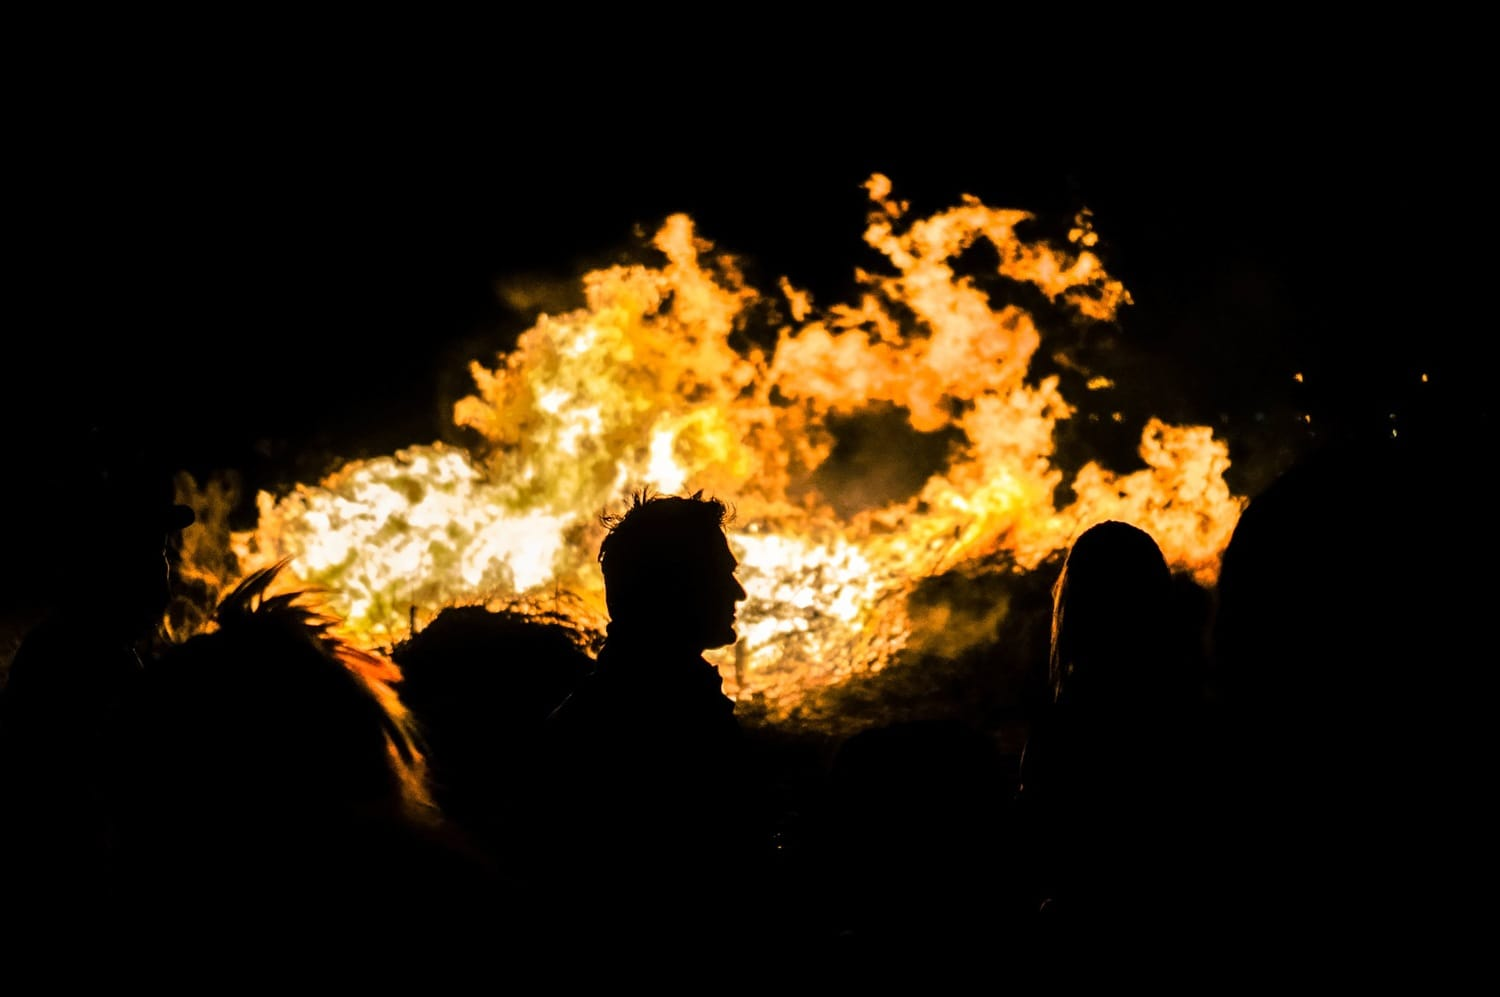 night-the-burning-of-the-carnival-king